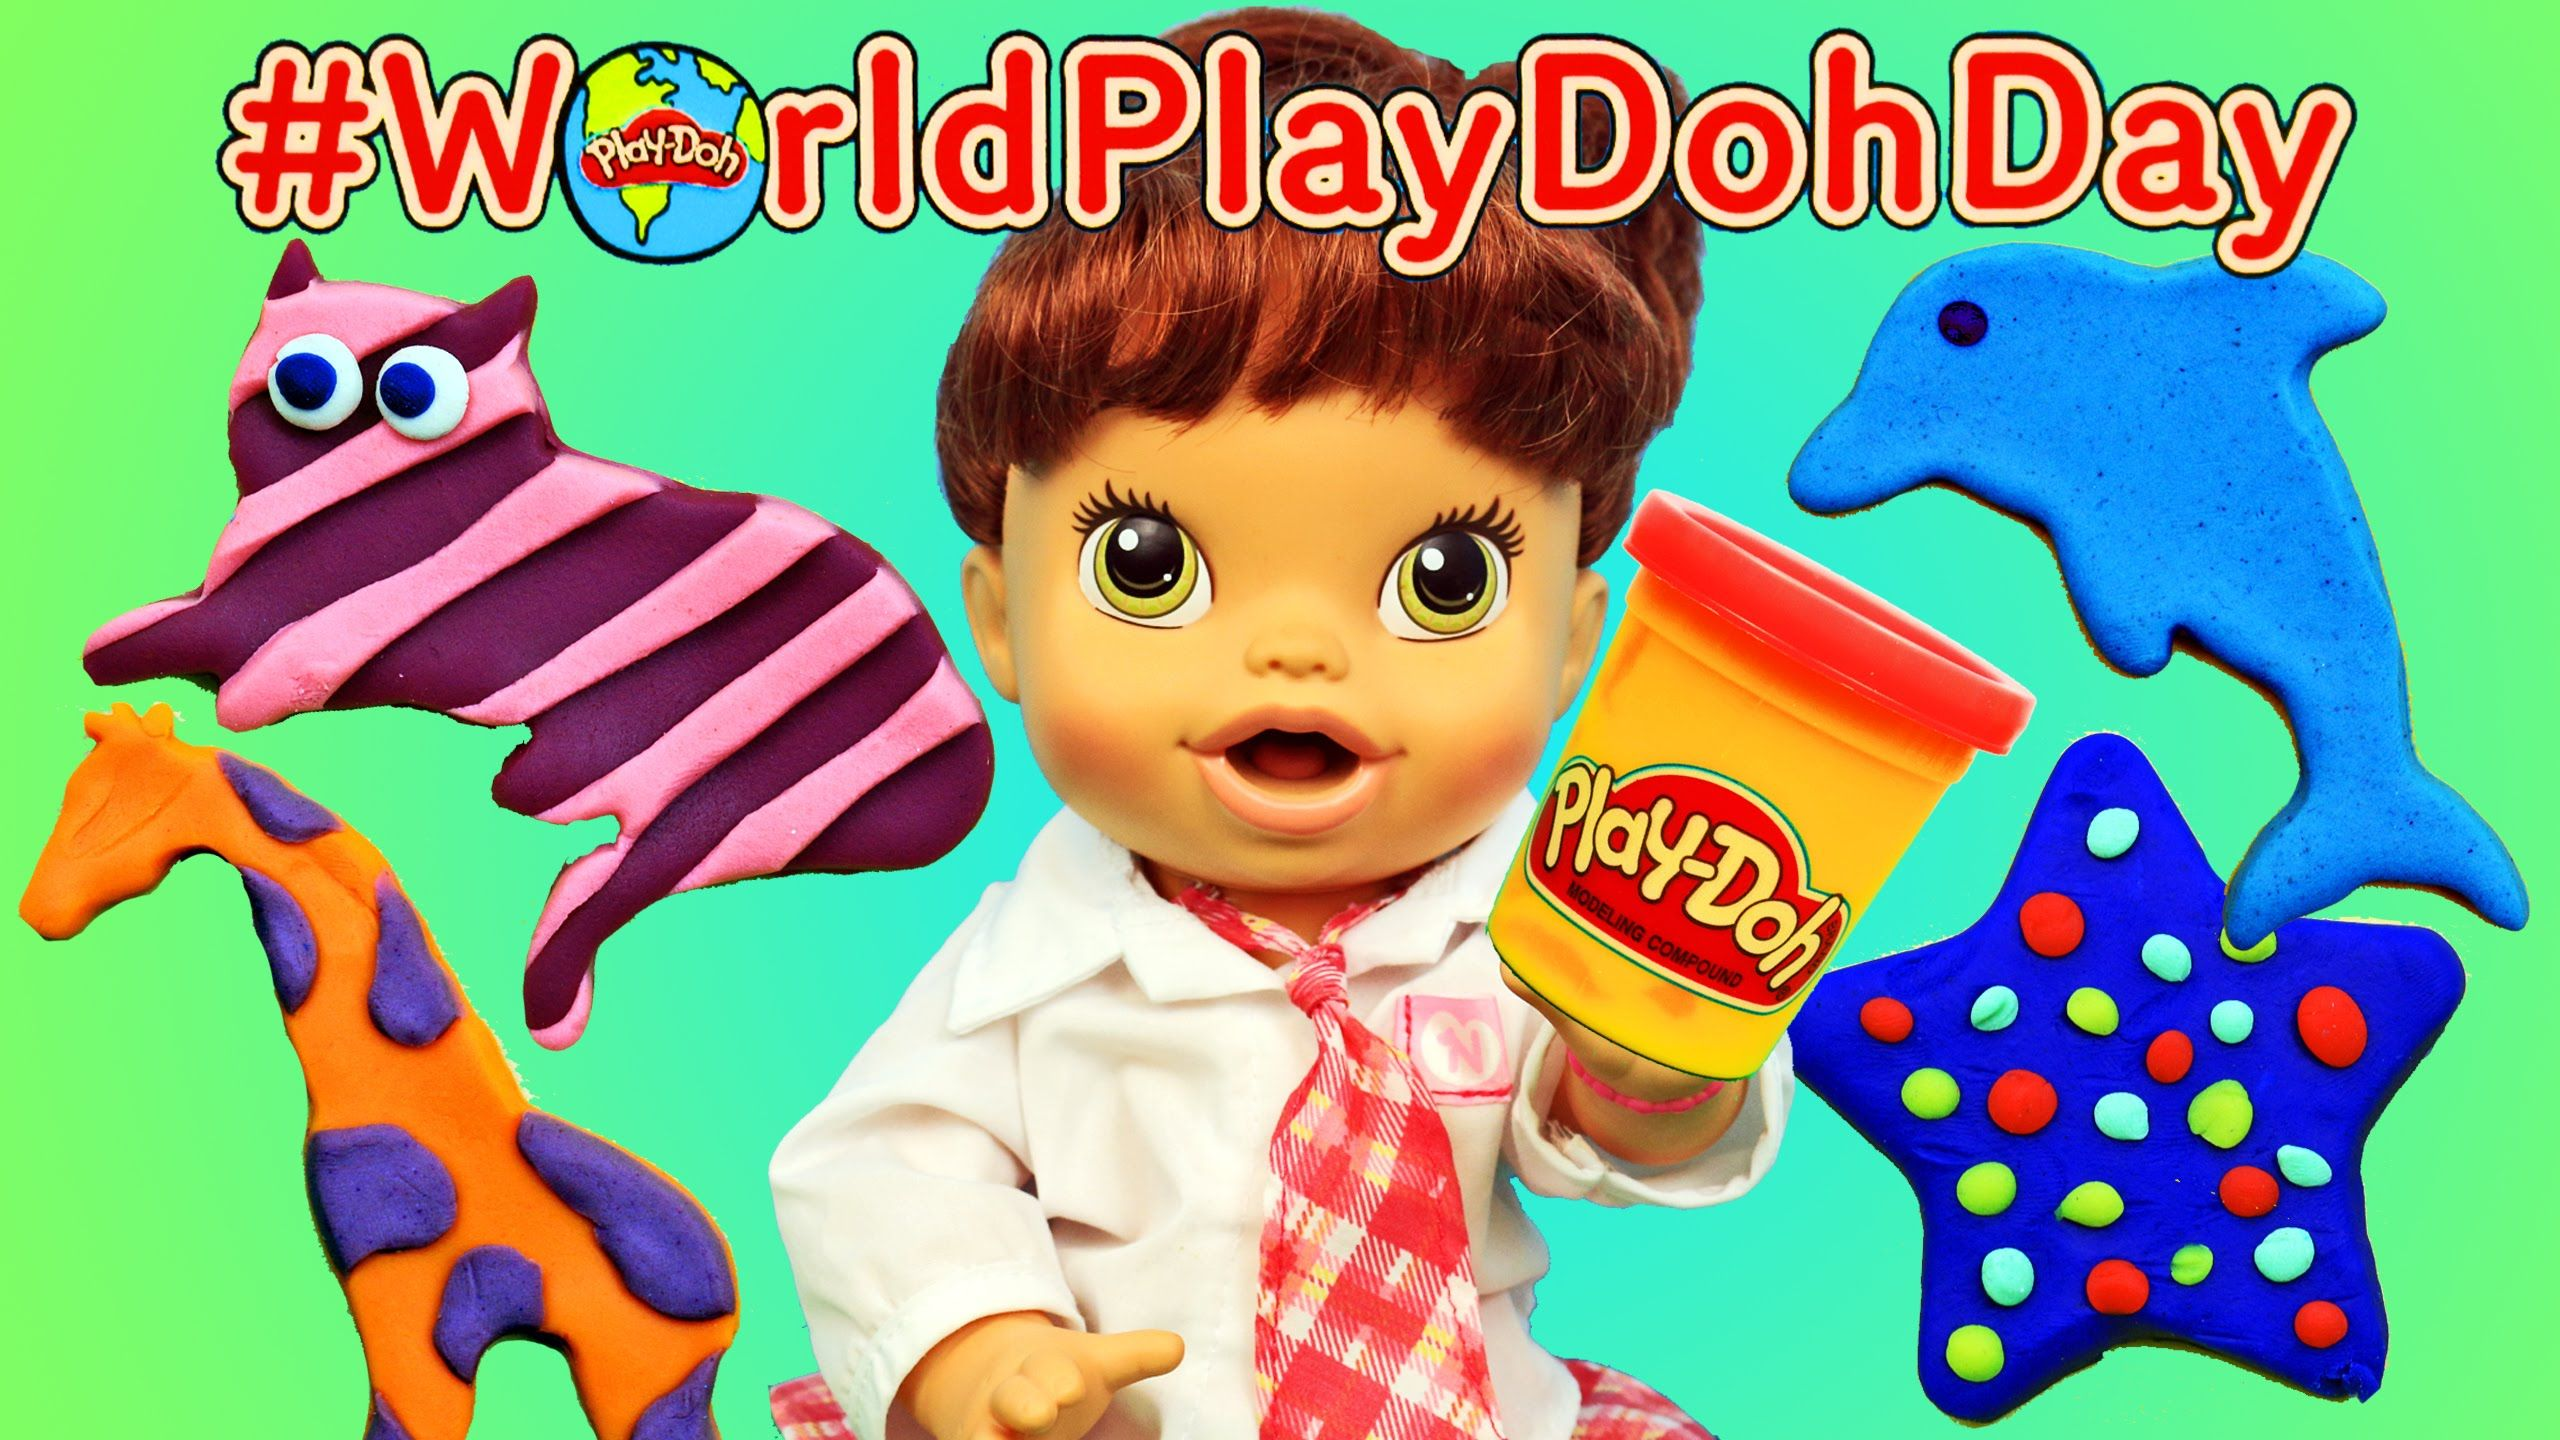 Baby Alive Lucy Diy Play Doh Animals Creations For Worldplaydohday By Disneycartoys Play Doh Animals Diy Play Doh Baby Alive